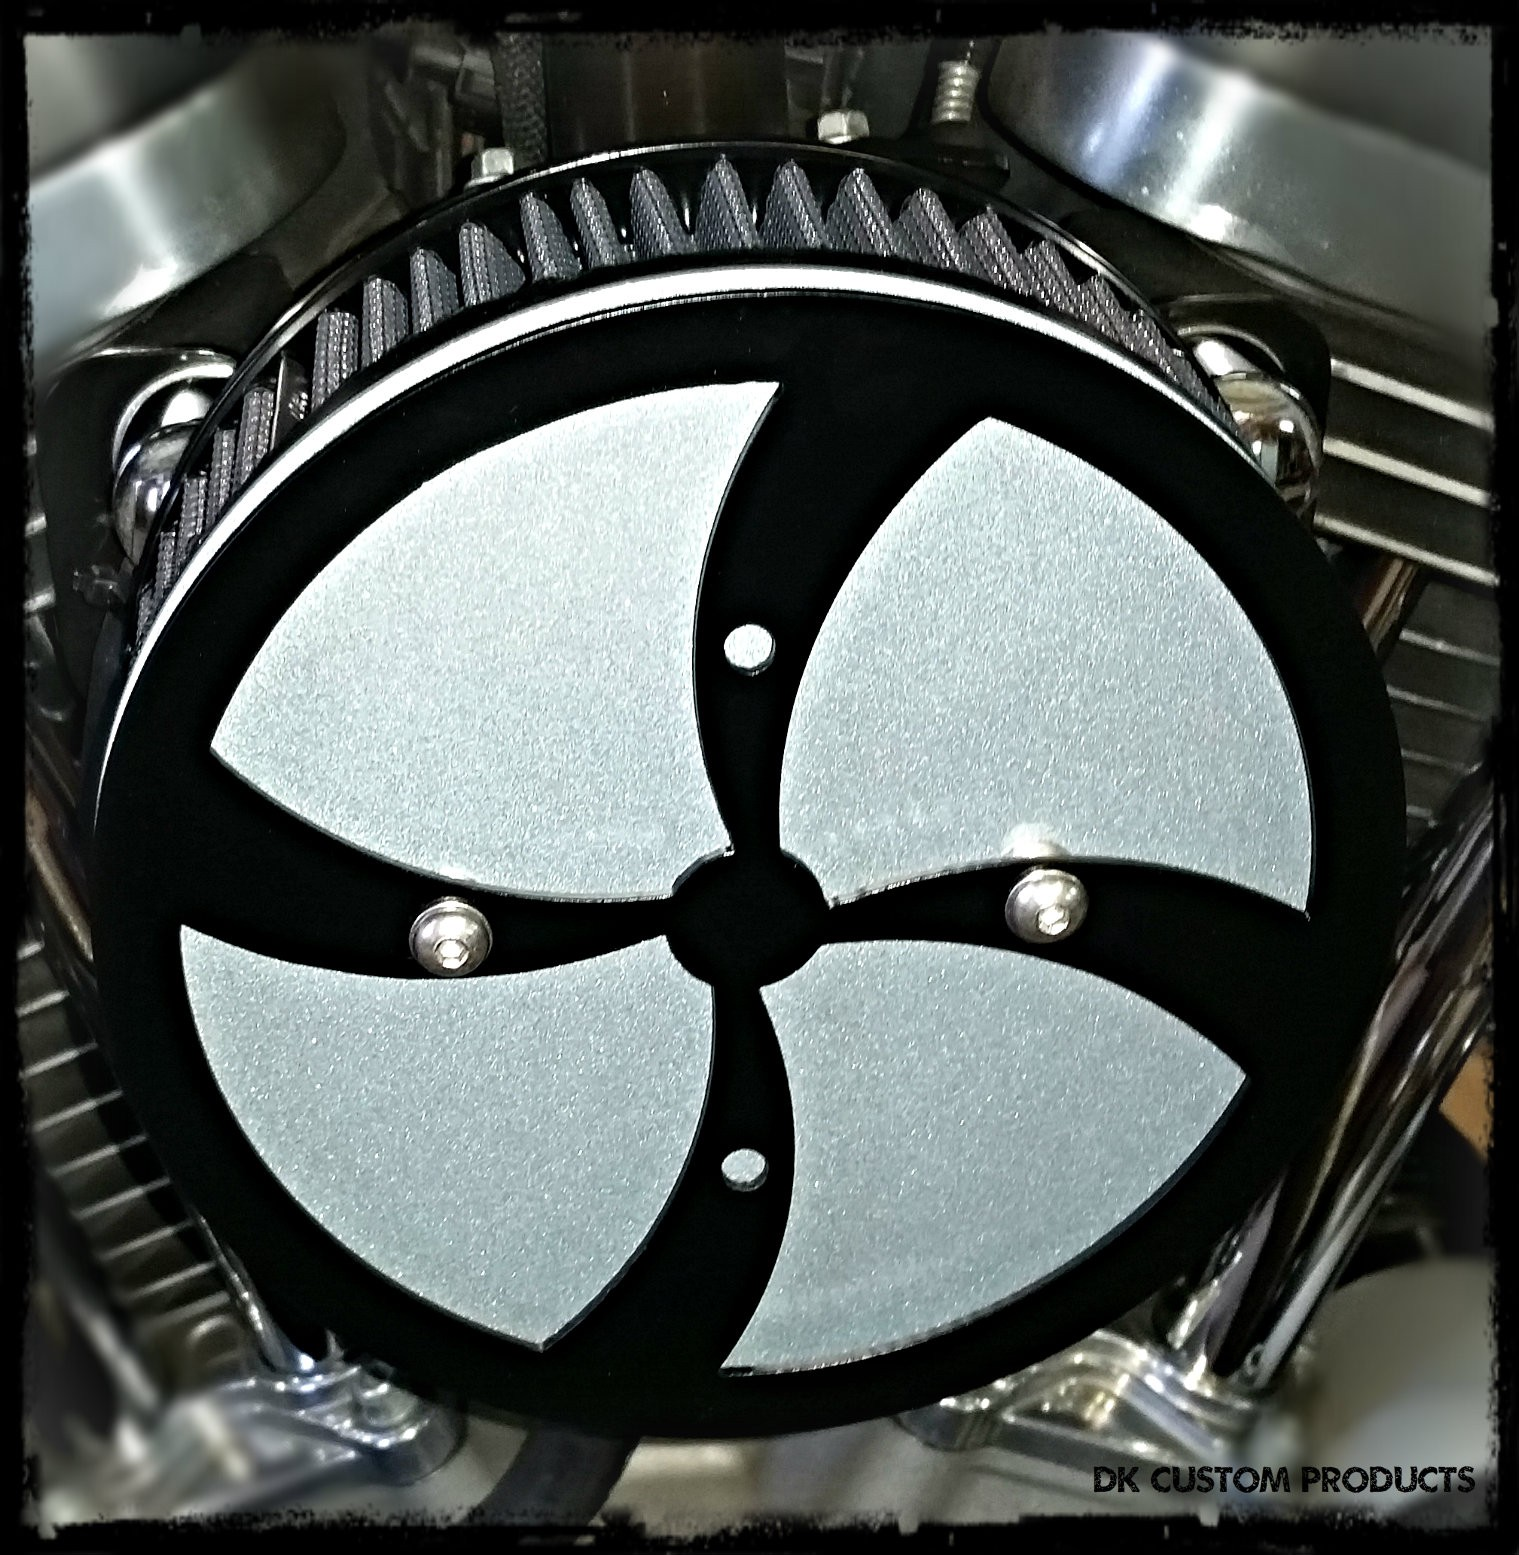 WindStorm 3-D Complete HiFlow 587 Air Cleaner  Harley Twin Cam DK Custom Harley Davidson Outlaw Air Cleaner Systems Complete EBS High Flow M-8 Milwaukee-Eight Softail Twin Cam Dyna  Touring Trike Freewheeler  Big Twin Stage I TBW Throttle By Wire